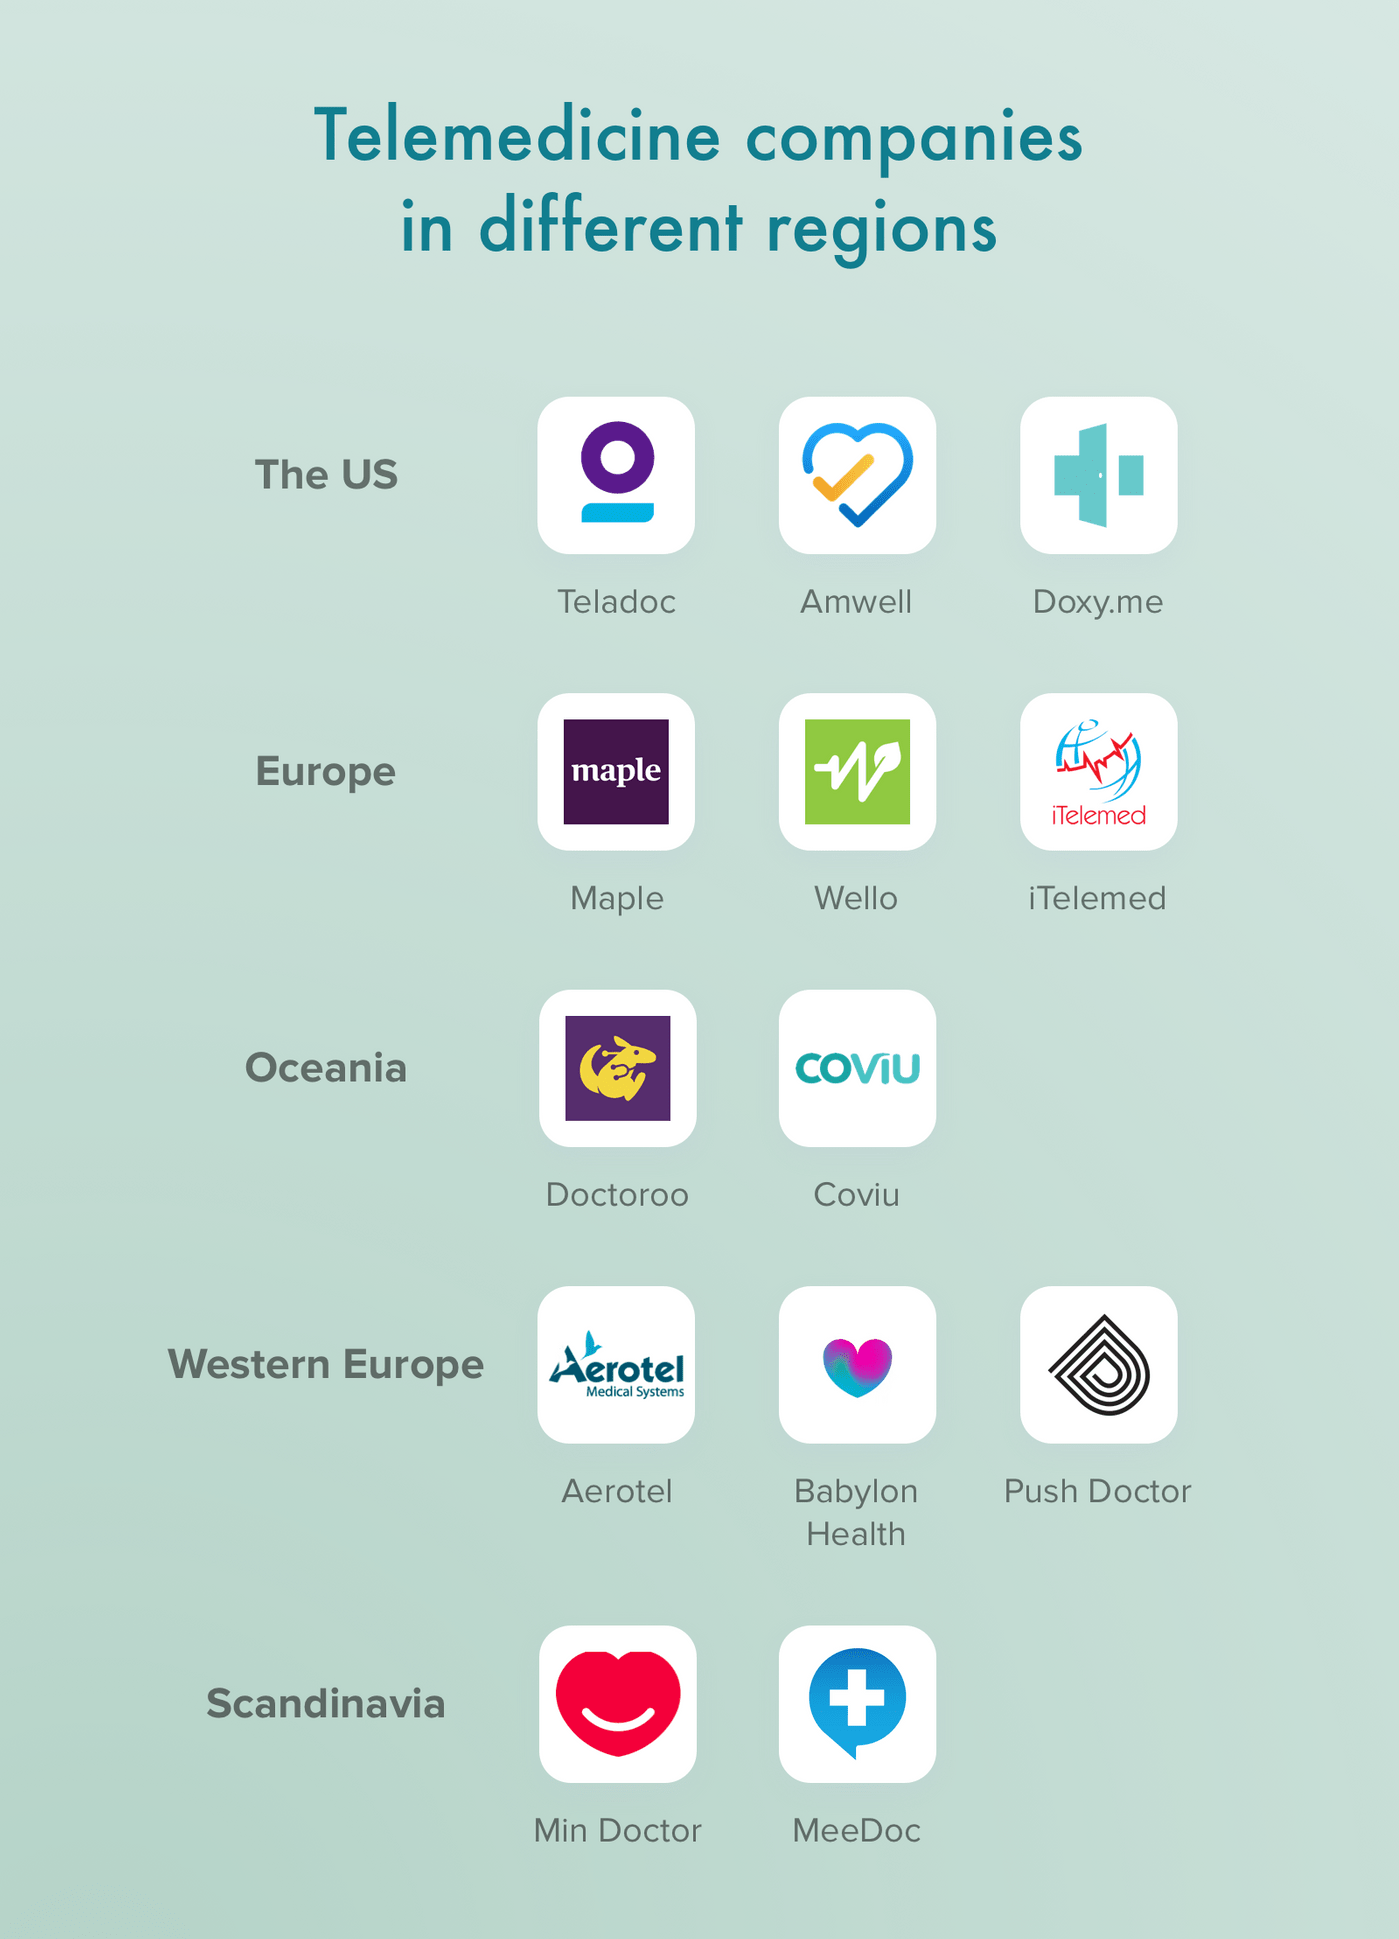 Examples of telemedicine apps in different regions